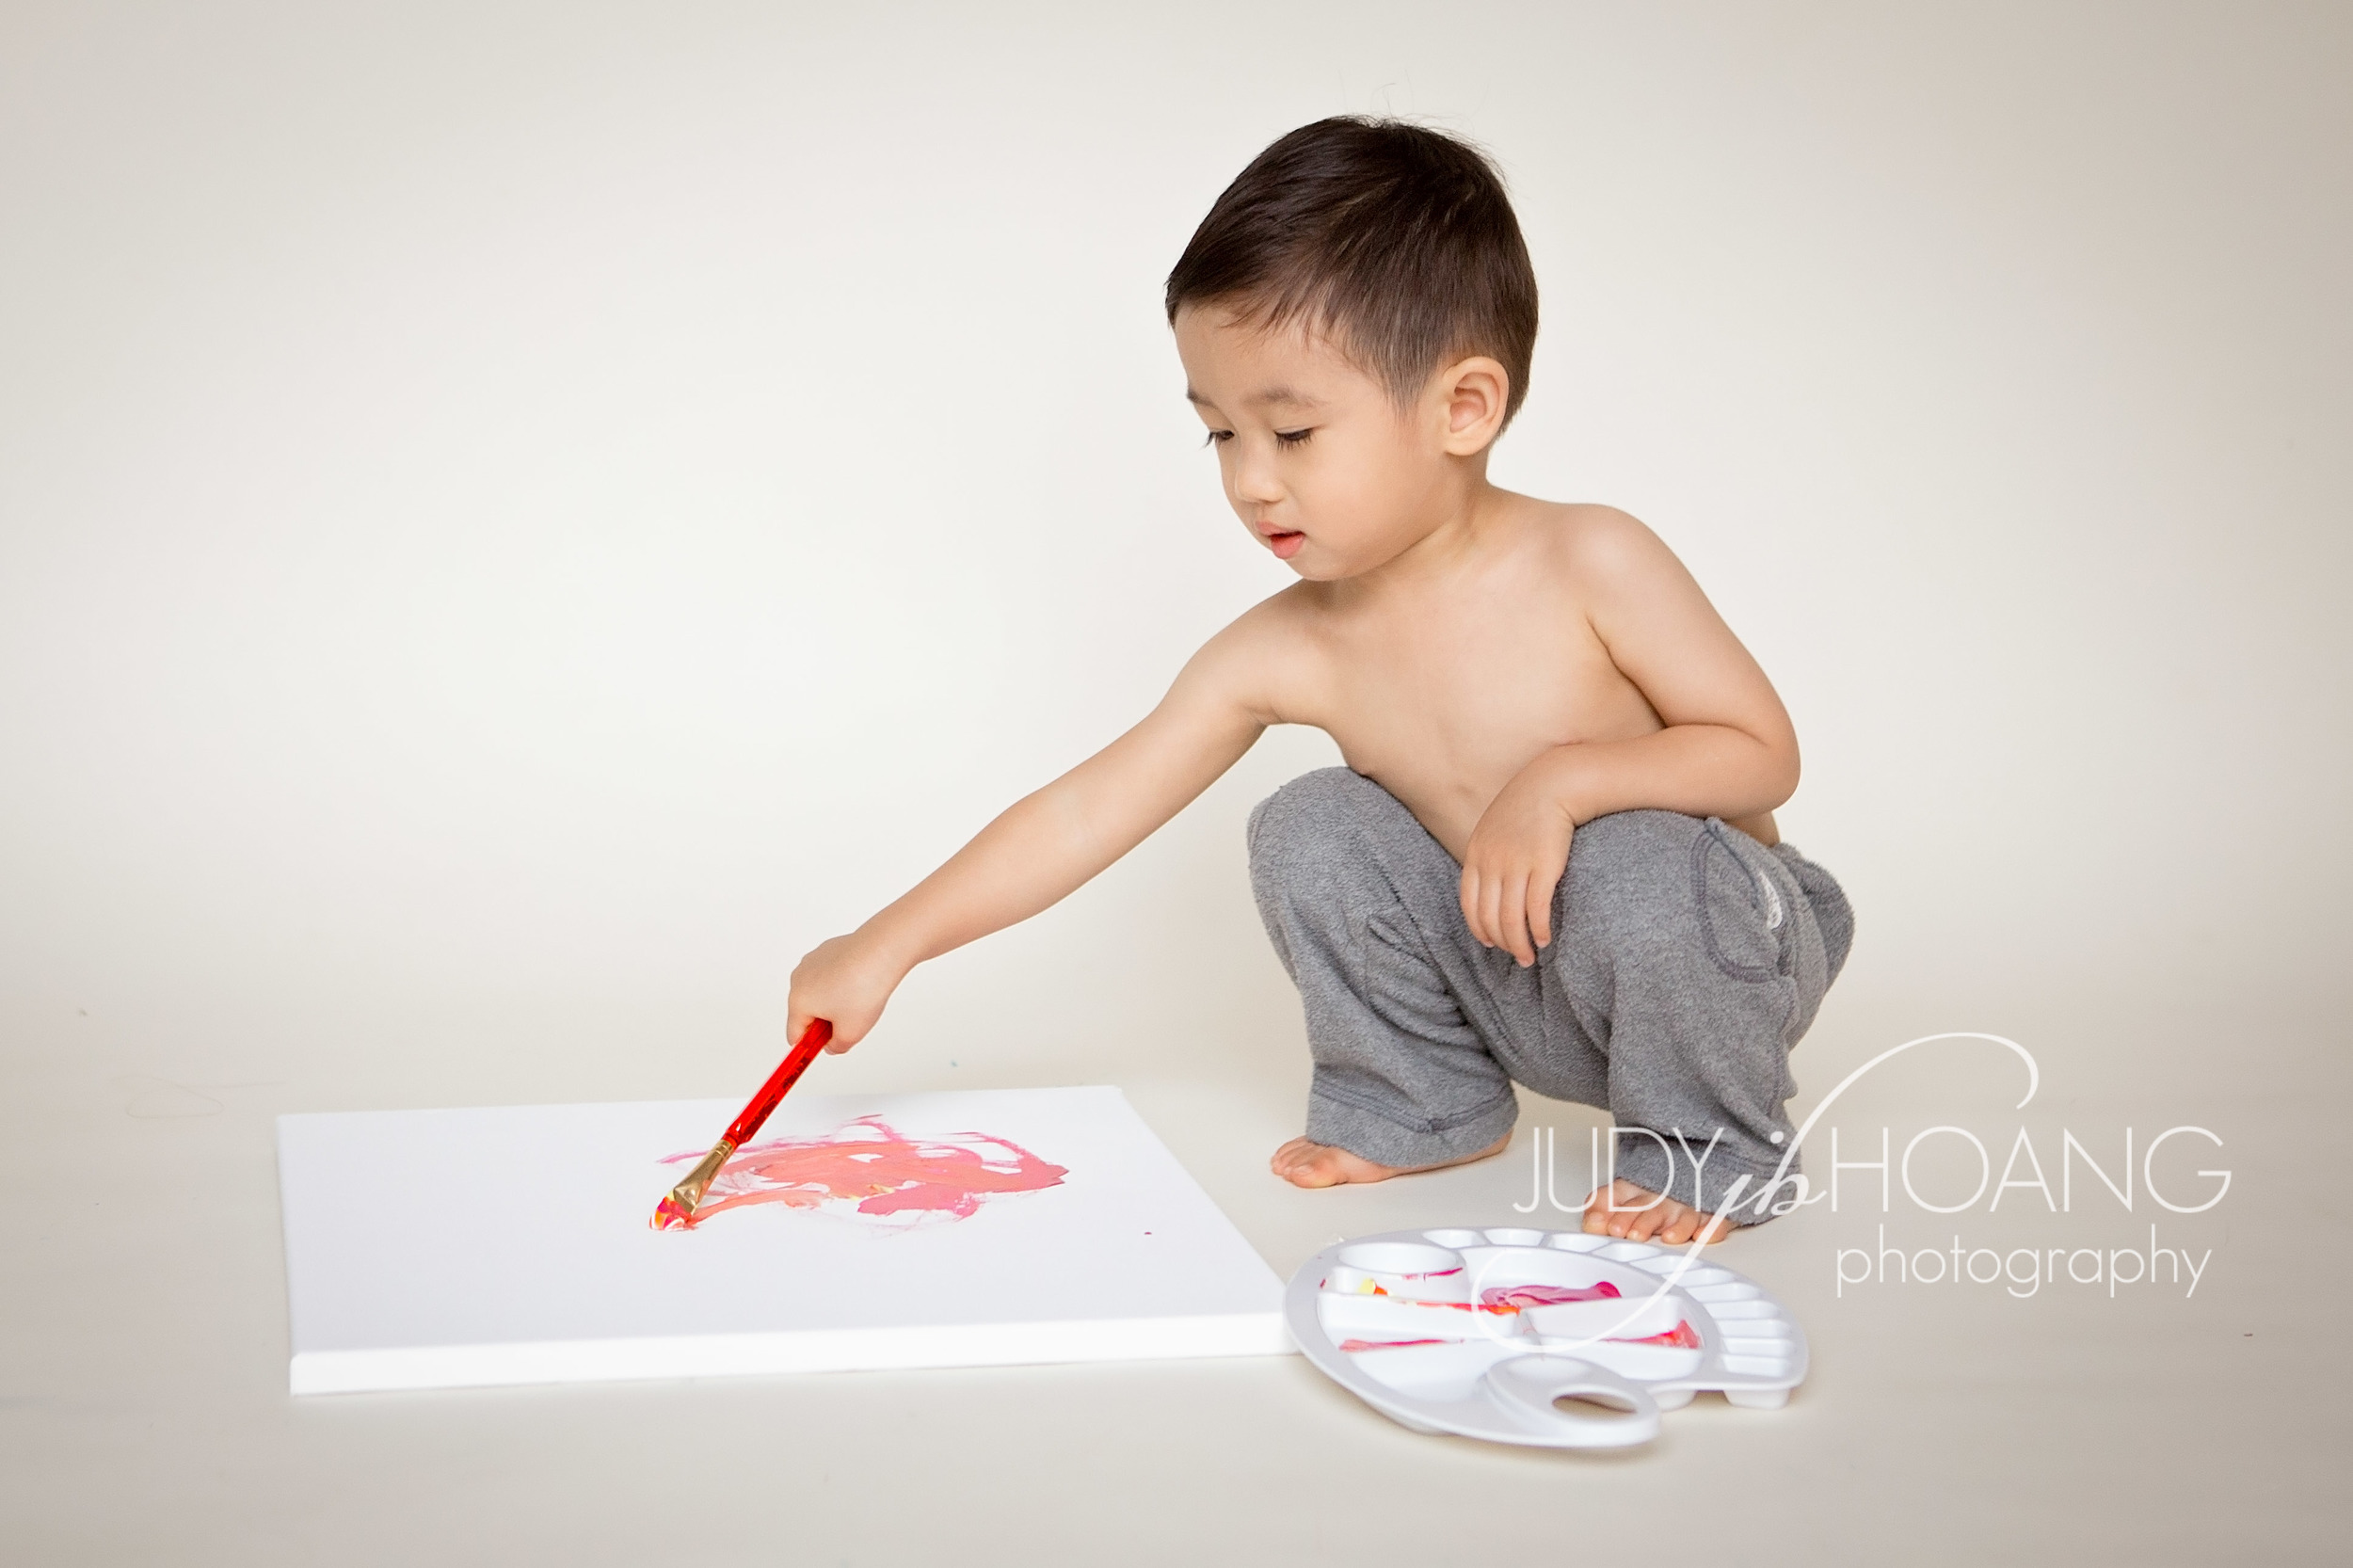 Judy Hoang Photography - Jacob Mini Picasso-1.JPG